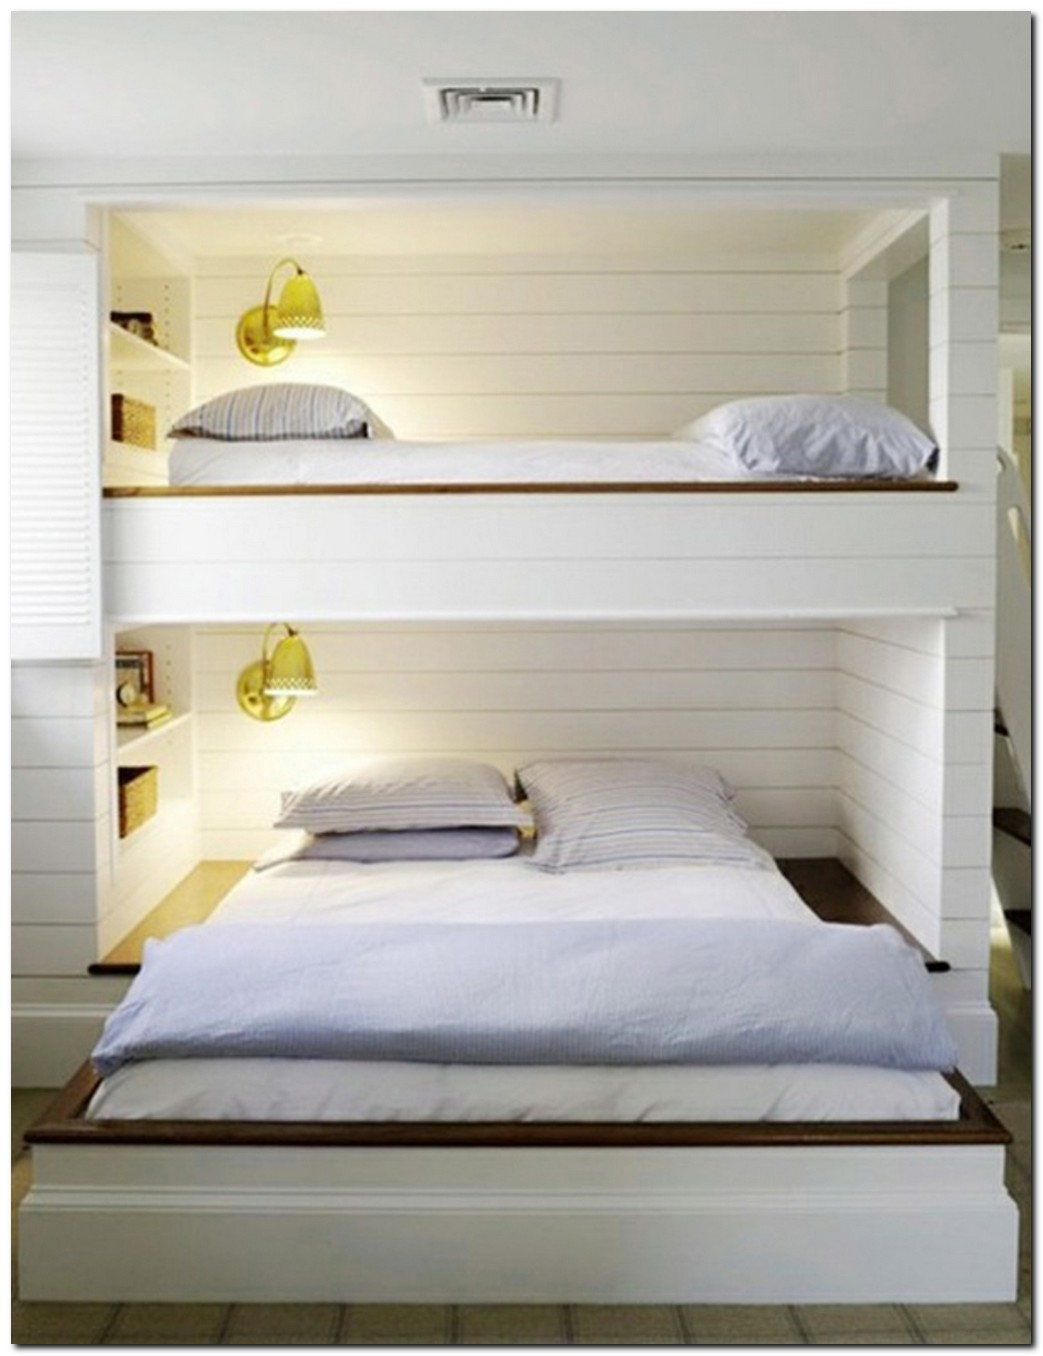 How to successfully choose bunk beds for kids 29